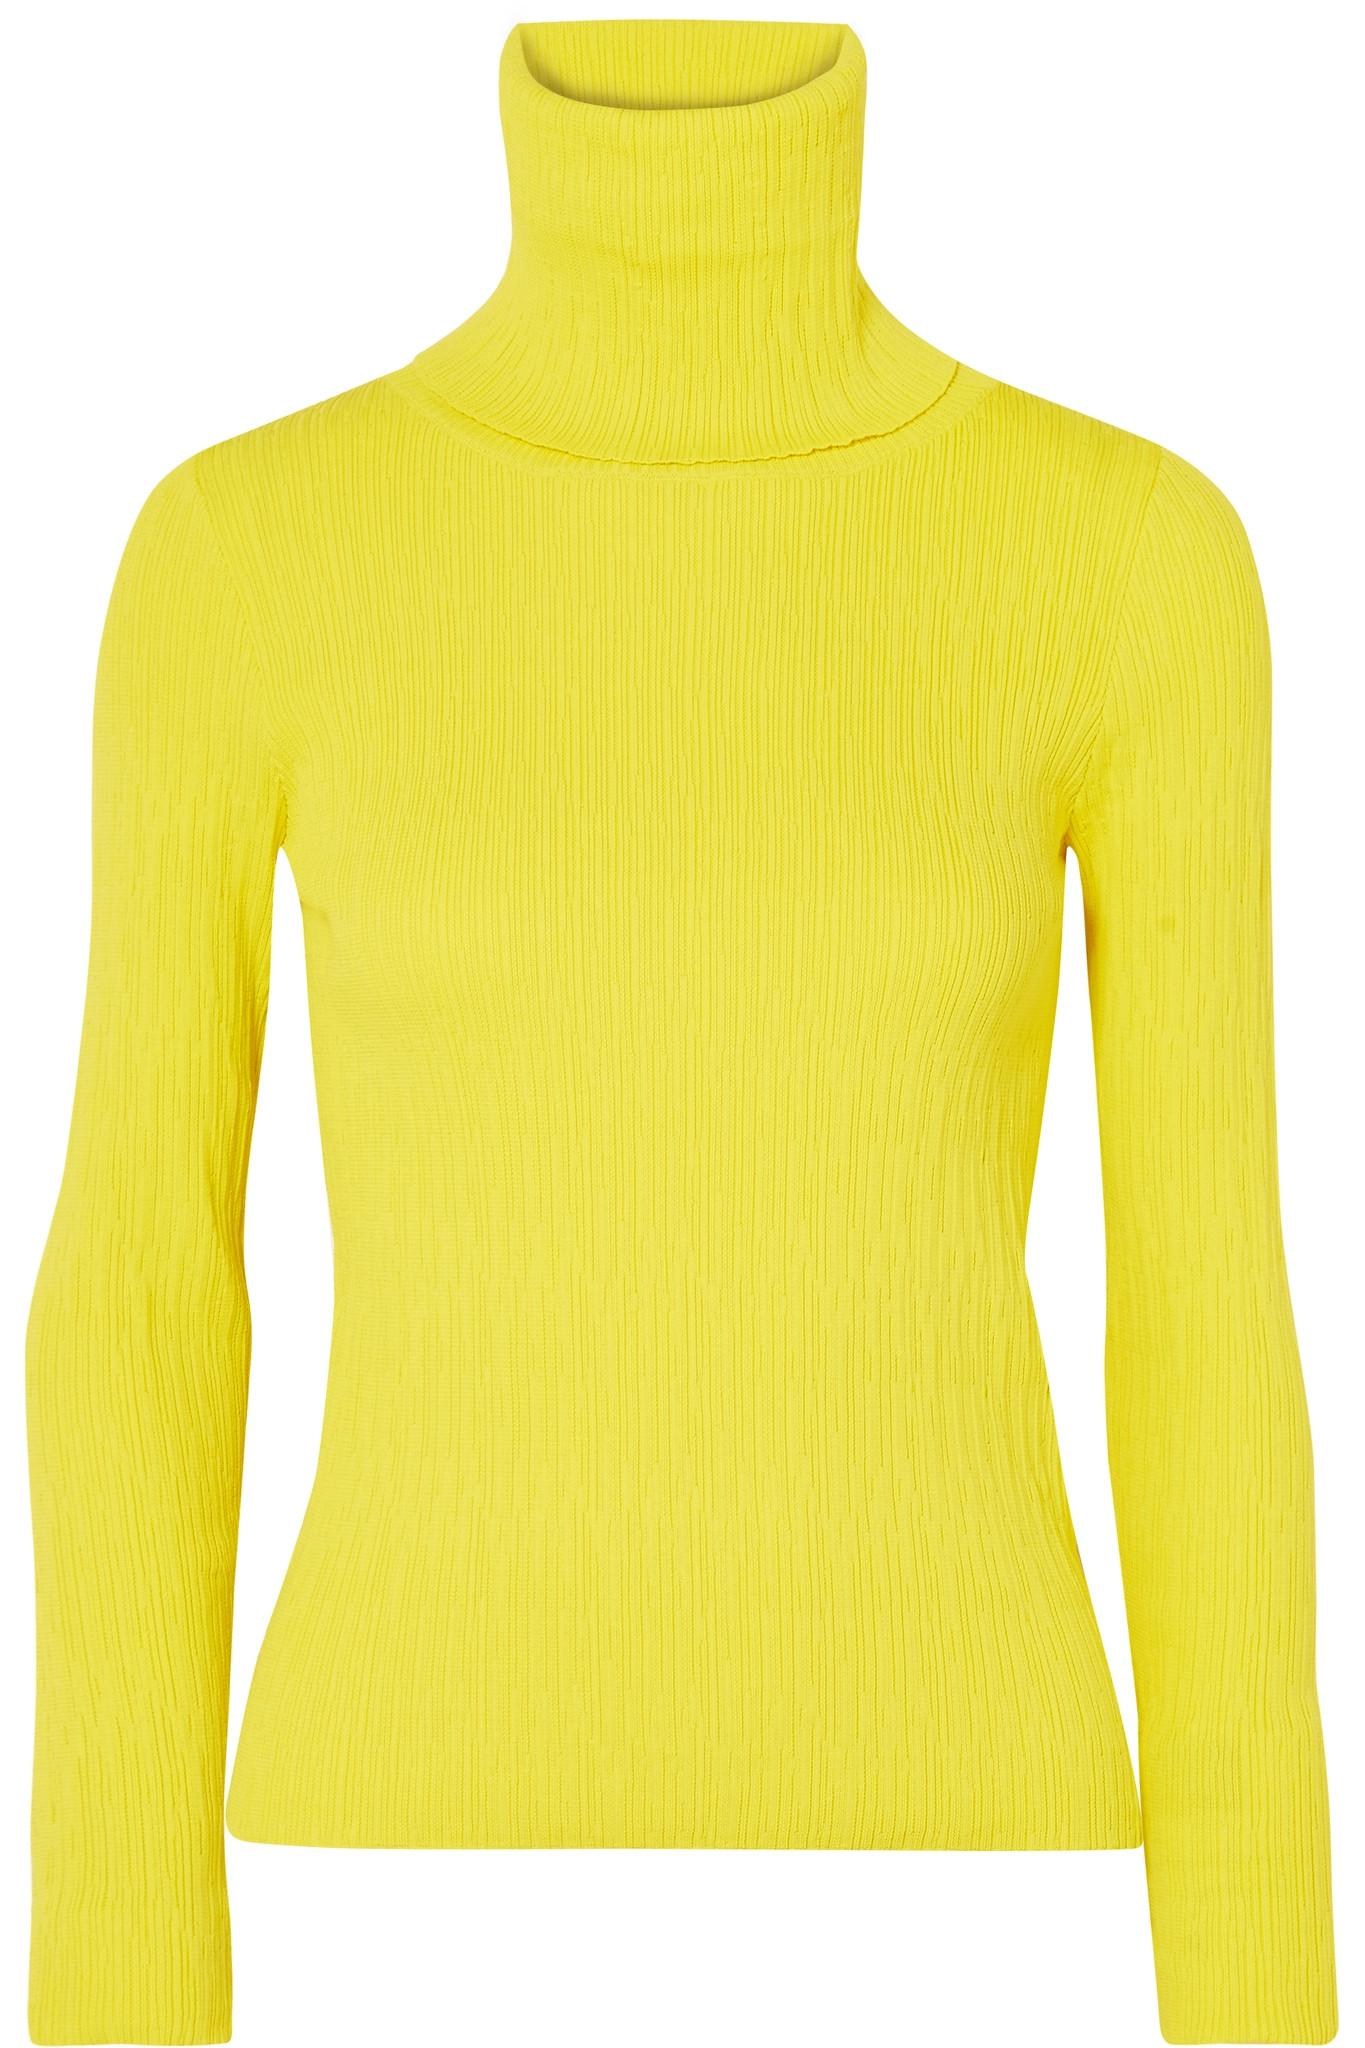 45d00f75867a8b Simon Miller Berto Neon Ribbed-knit Turtleneck Sweater in Yellow - Lyst